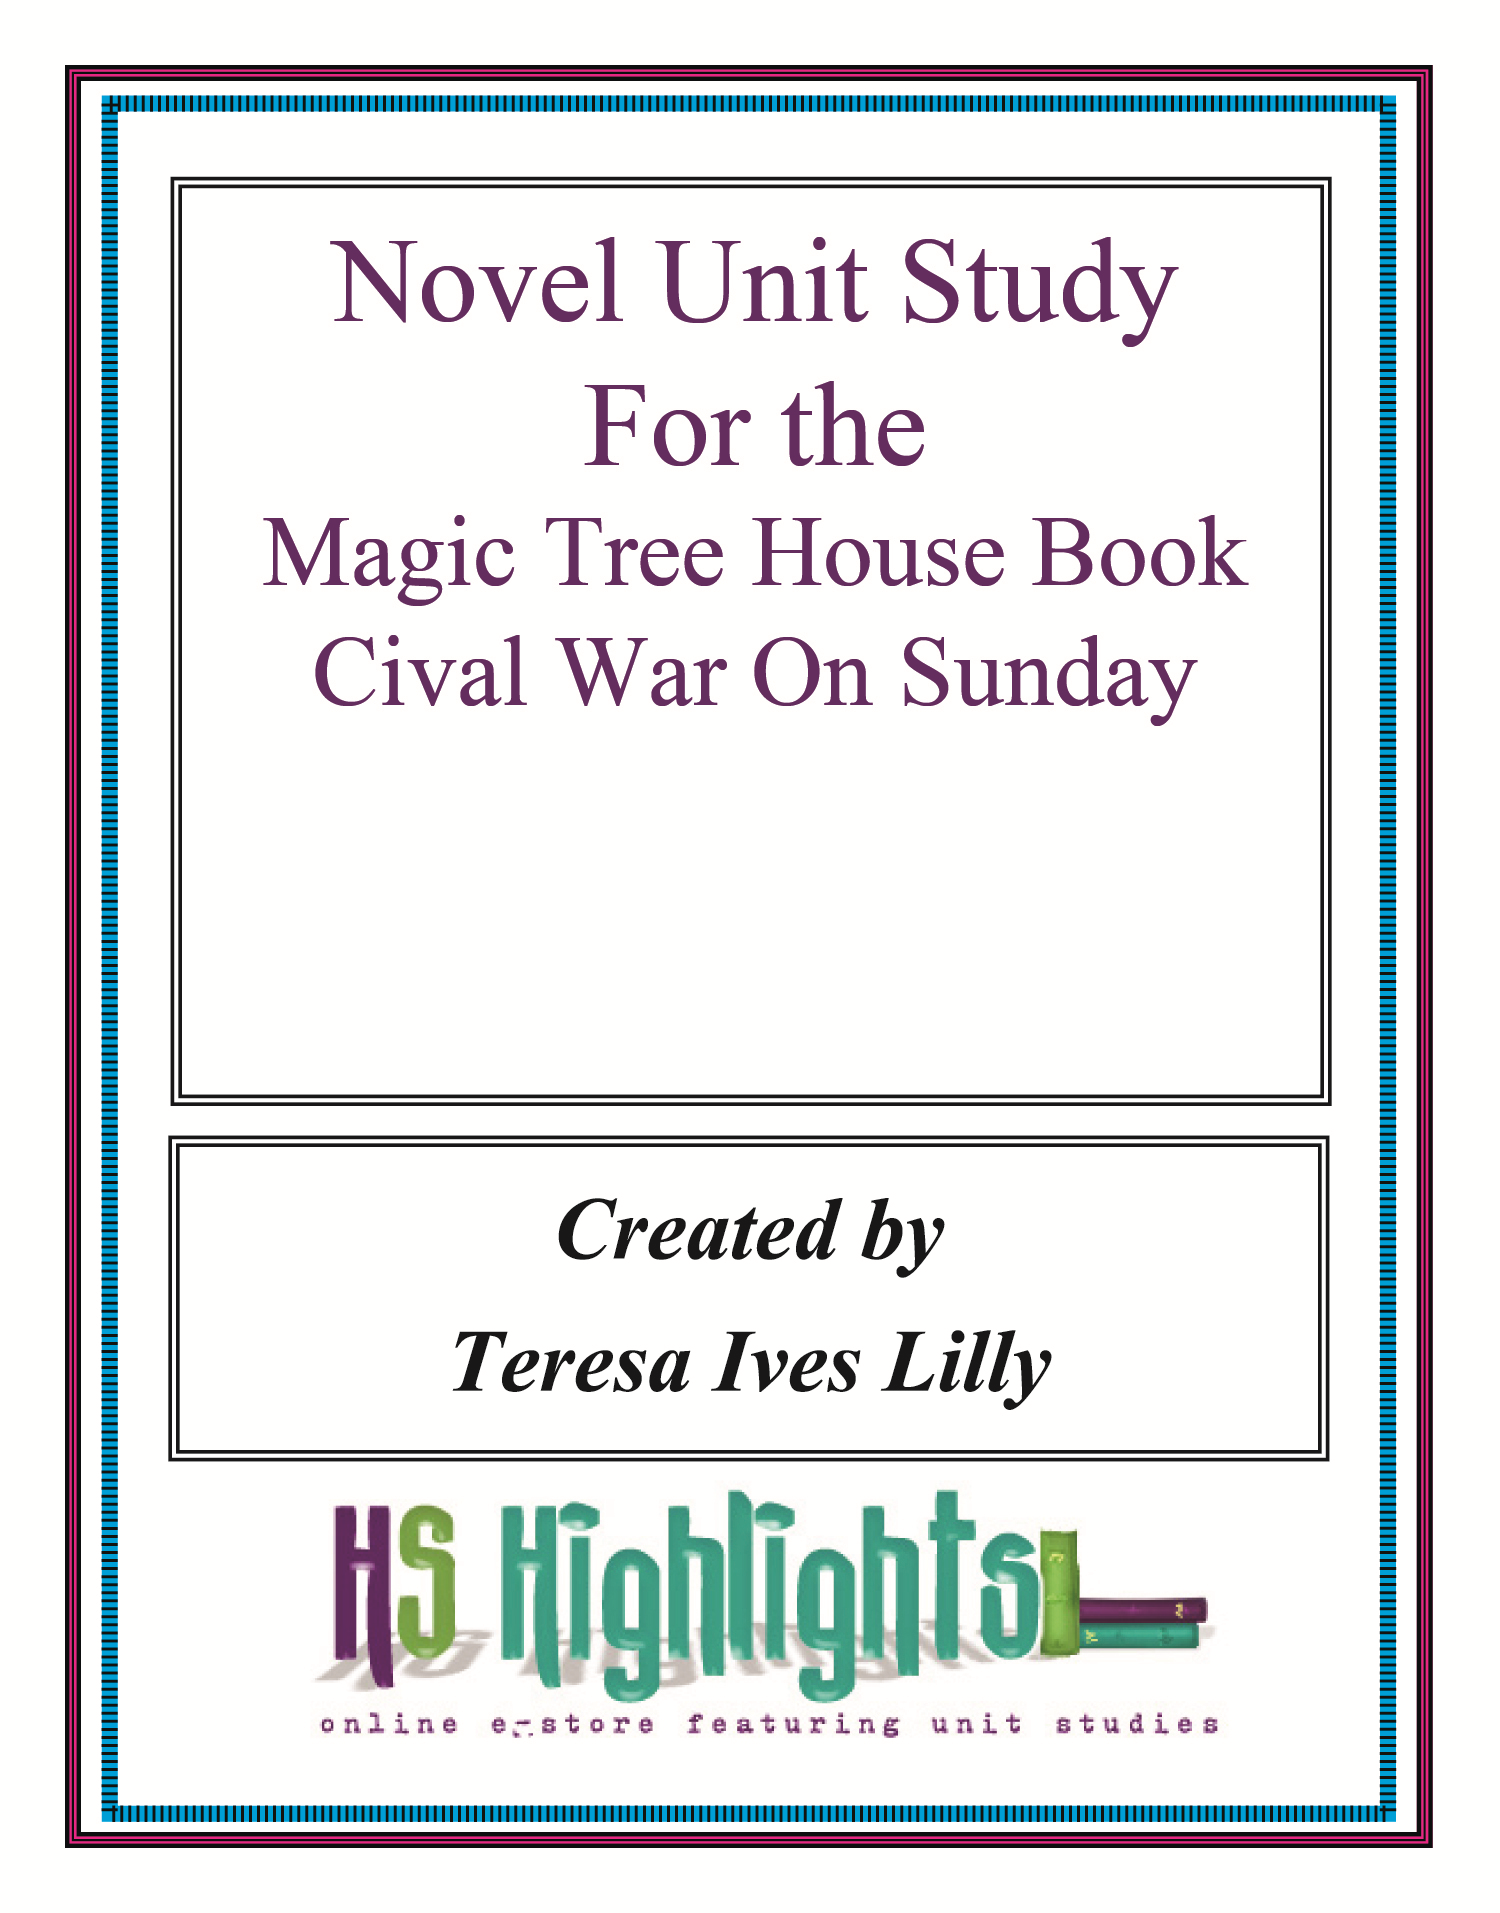 Novel Unit Study for the Magic Tree House Book Civil War On Sunday